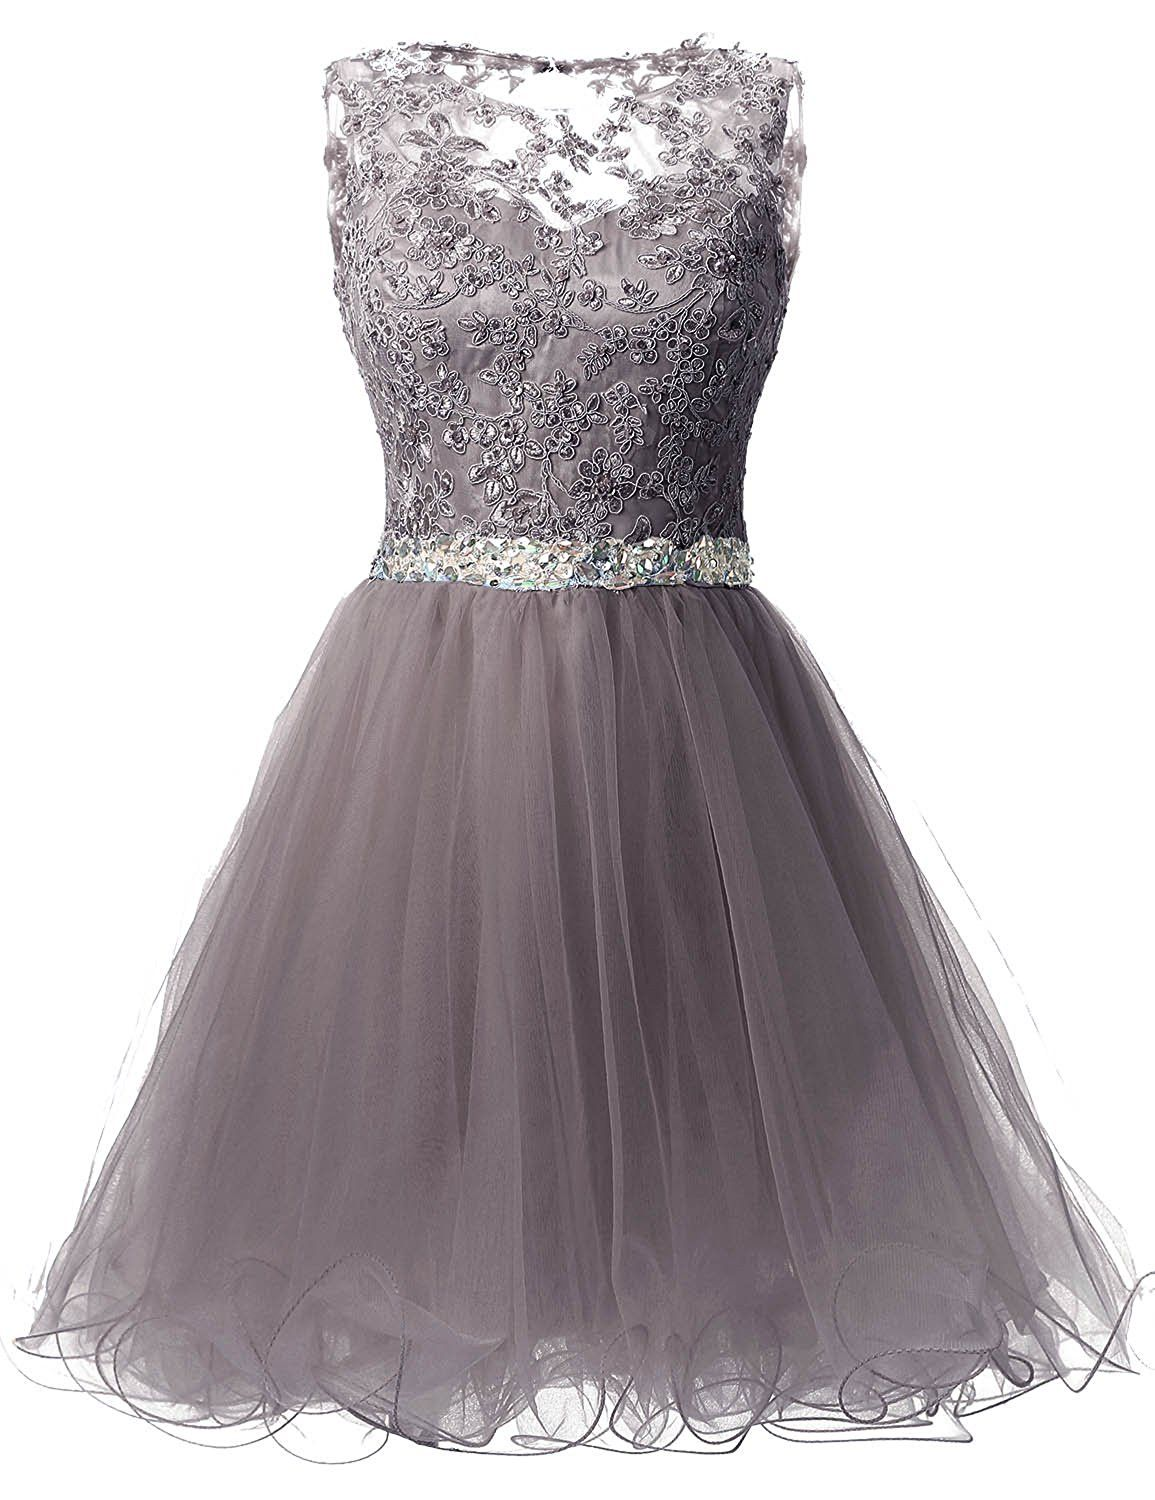 99f49897ef3 Amazon.com  Sarahbridal Women s Short Tulle Beading Homecoming Dress Prom  Gown Burgundy US2  Clothing